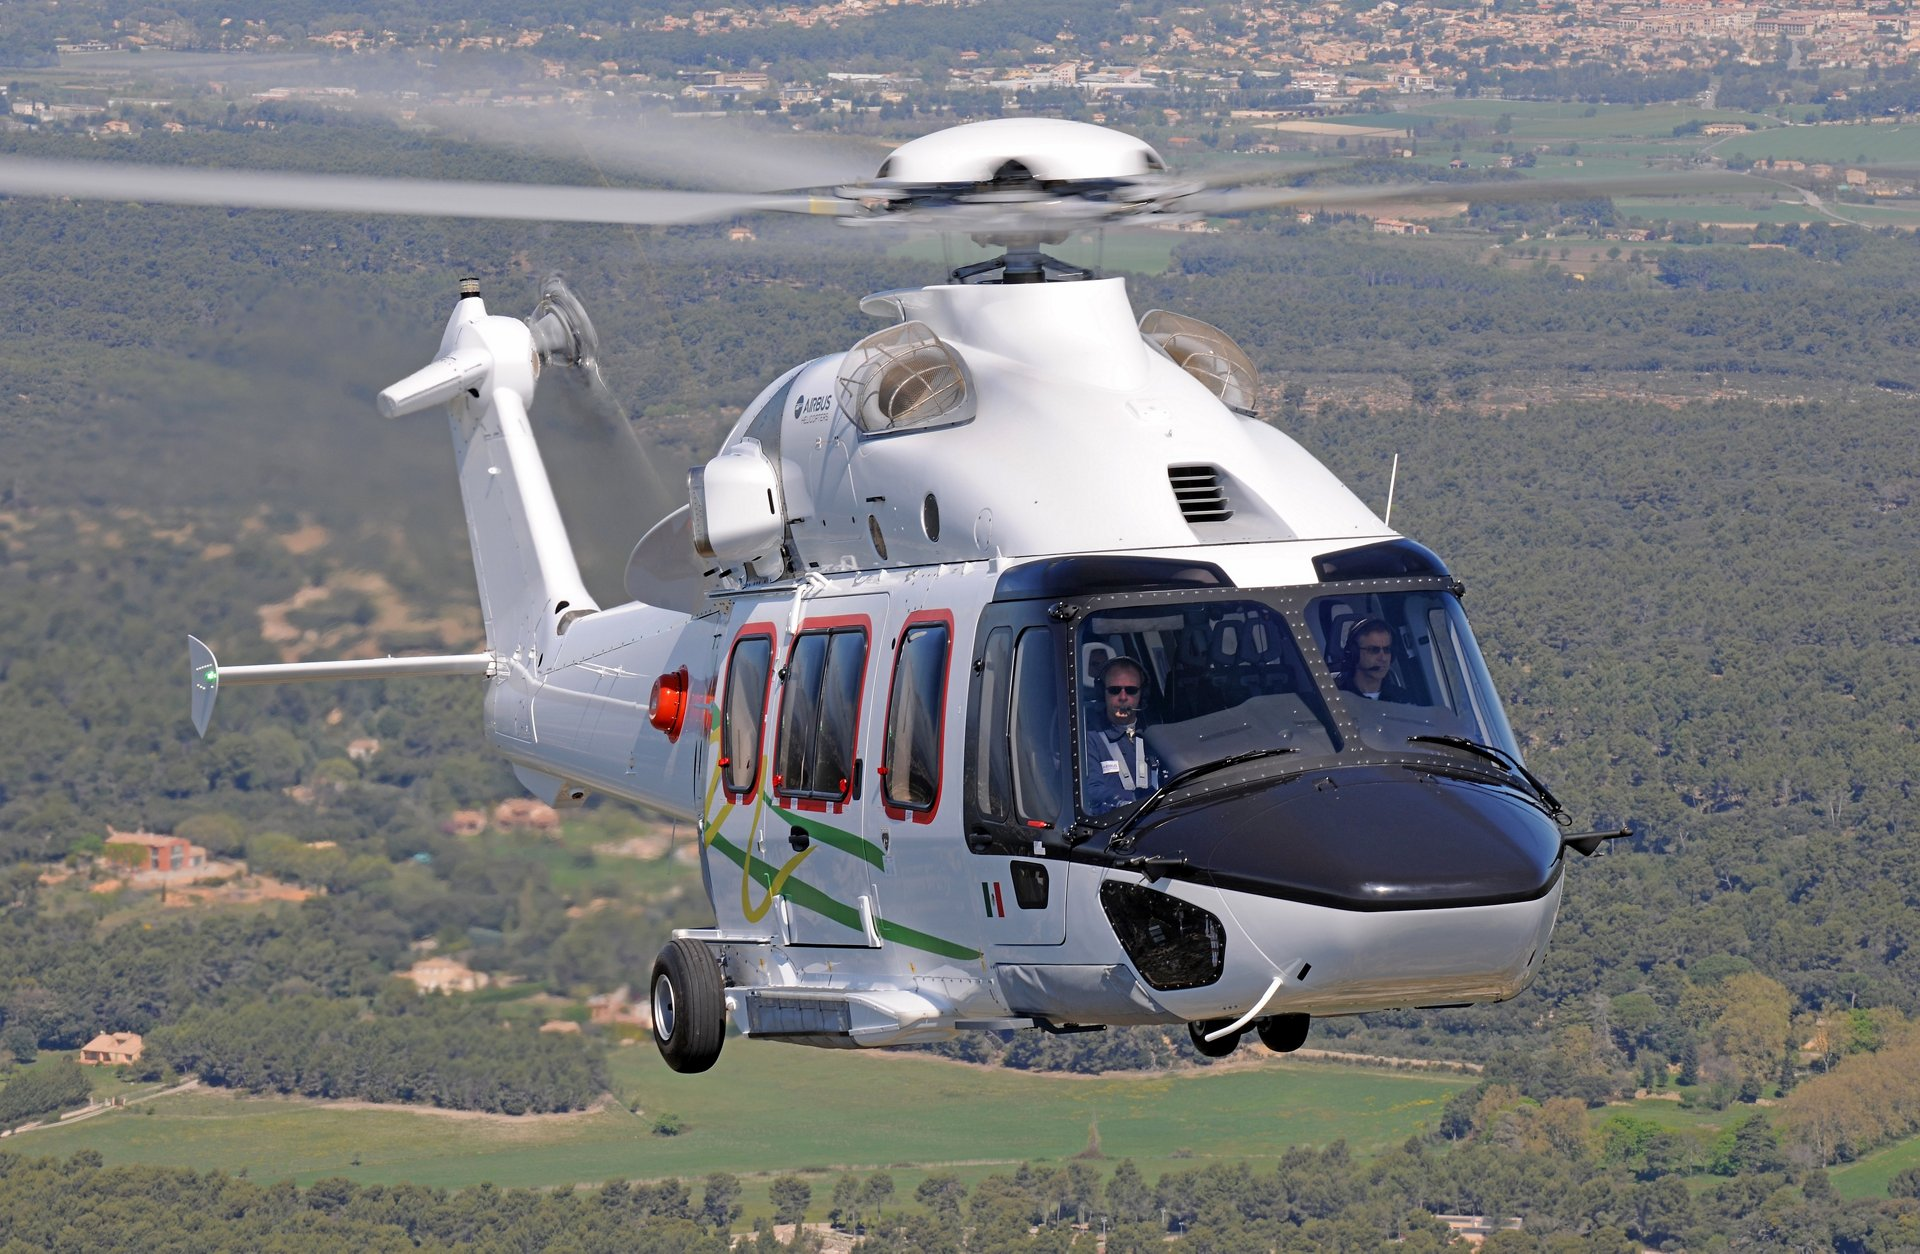 As of August 2016, Airbus Helicopters' new 7-ton class H175 helicopter counts Denmark and Mexico among its countries of operation, increasing its total to five countries, with operations already underway in the Netherlands, Scotland and Ghana.